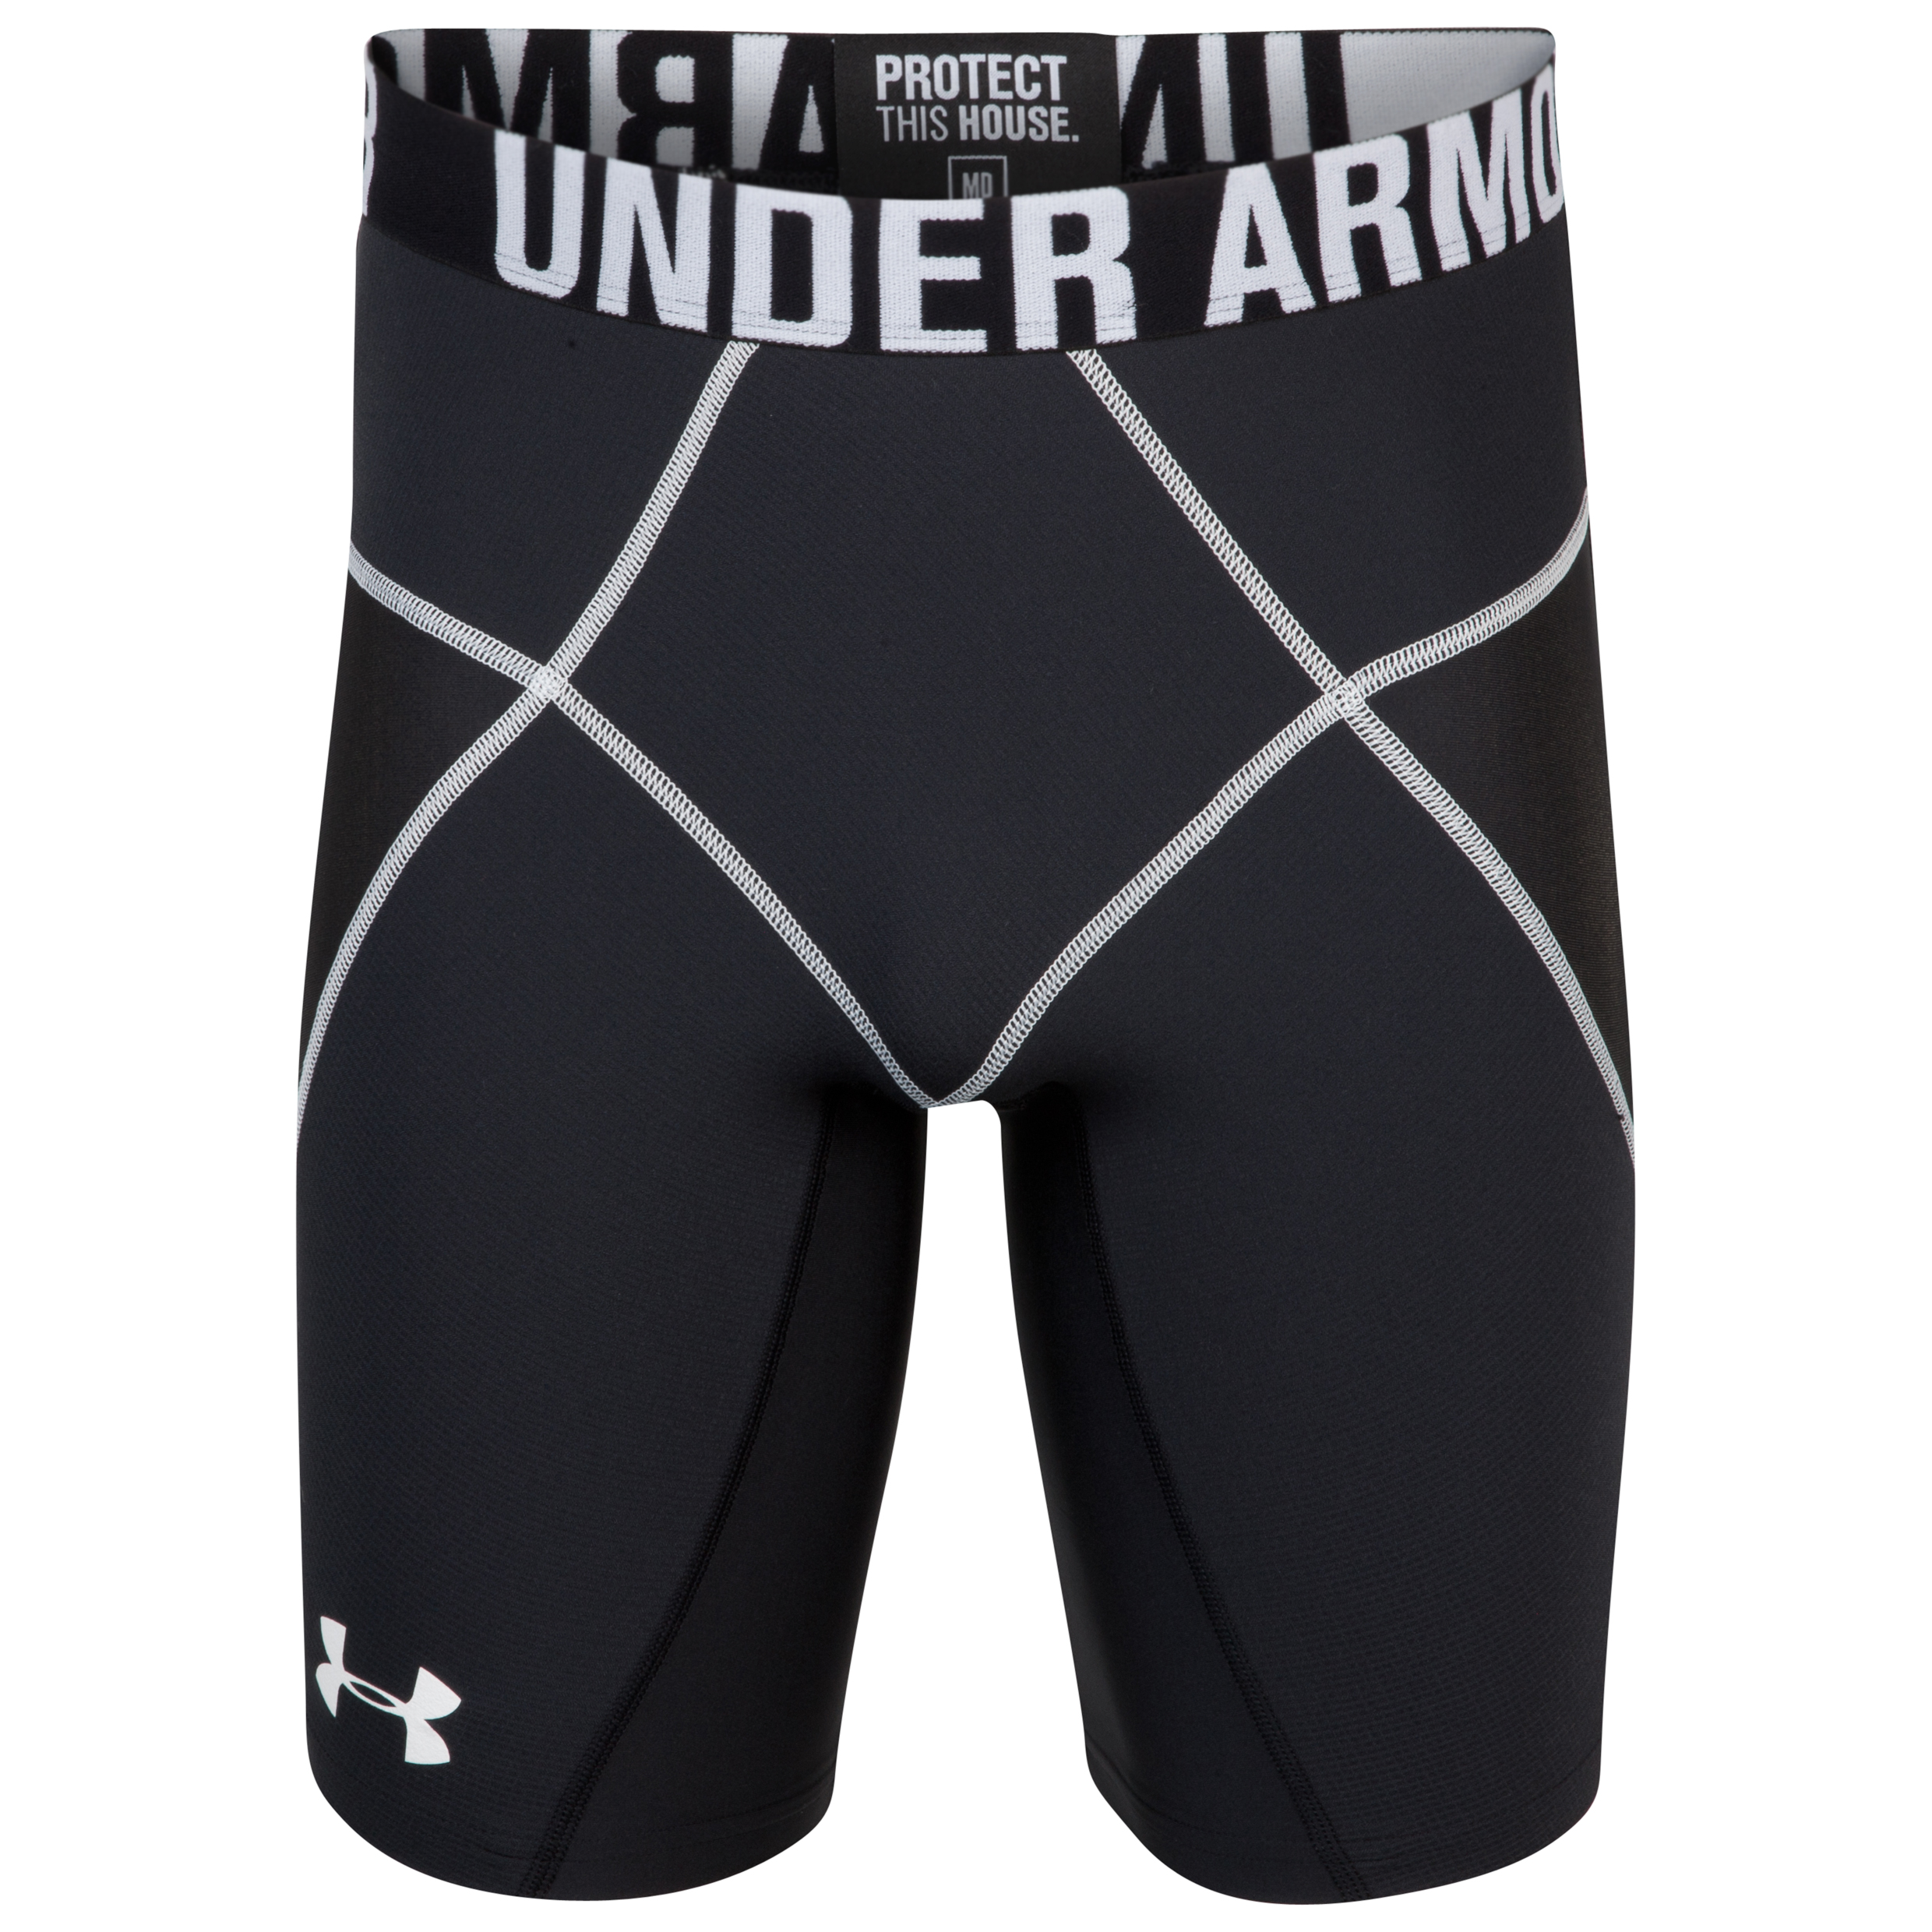 Under Armour Heatgear Core Lite Shorts - Black